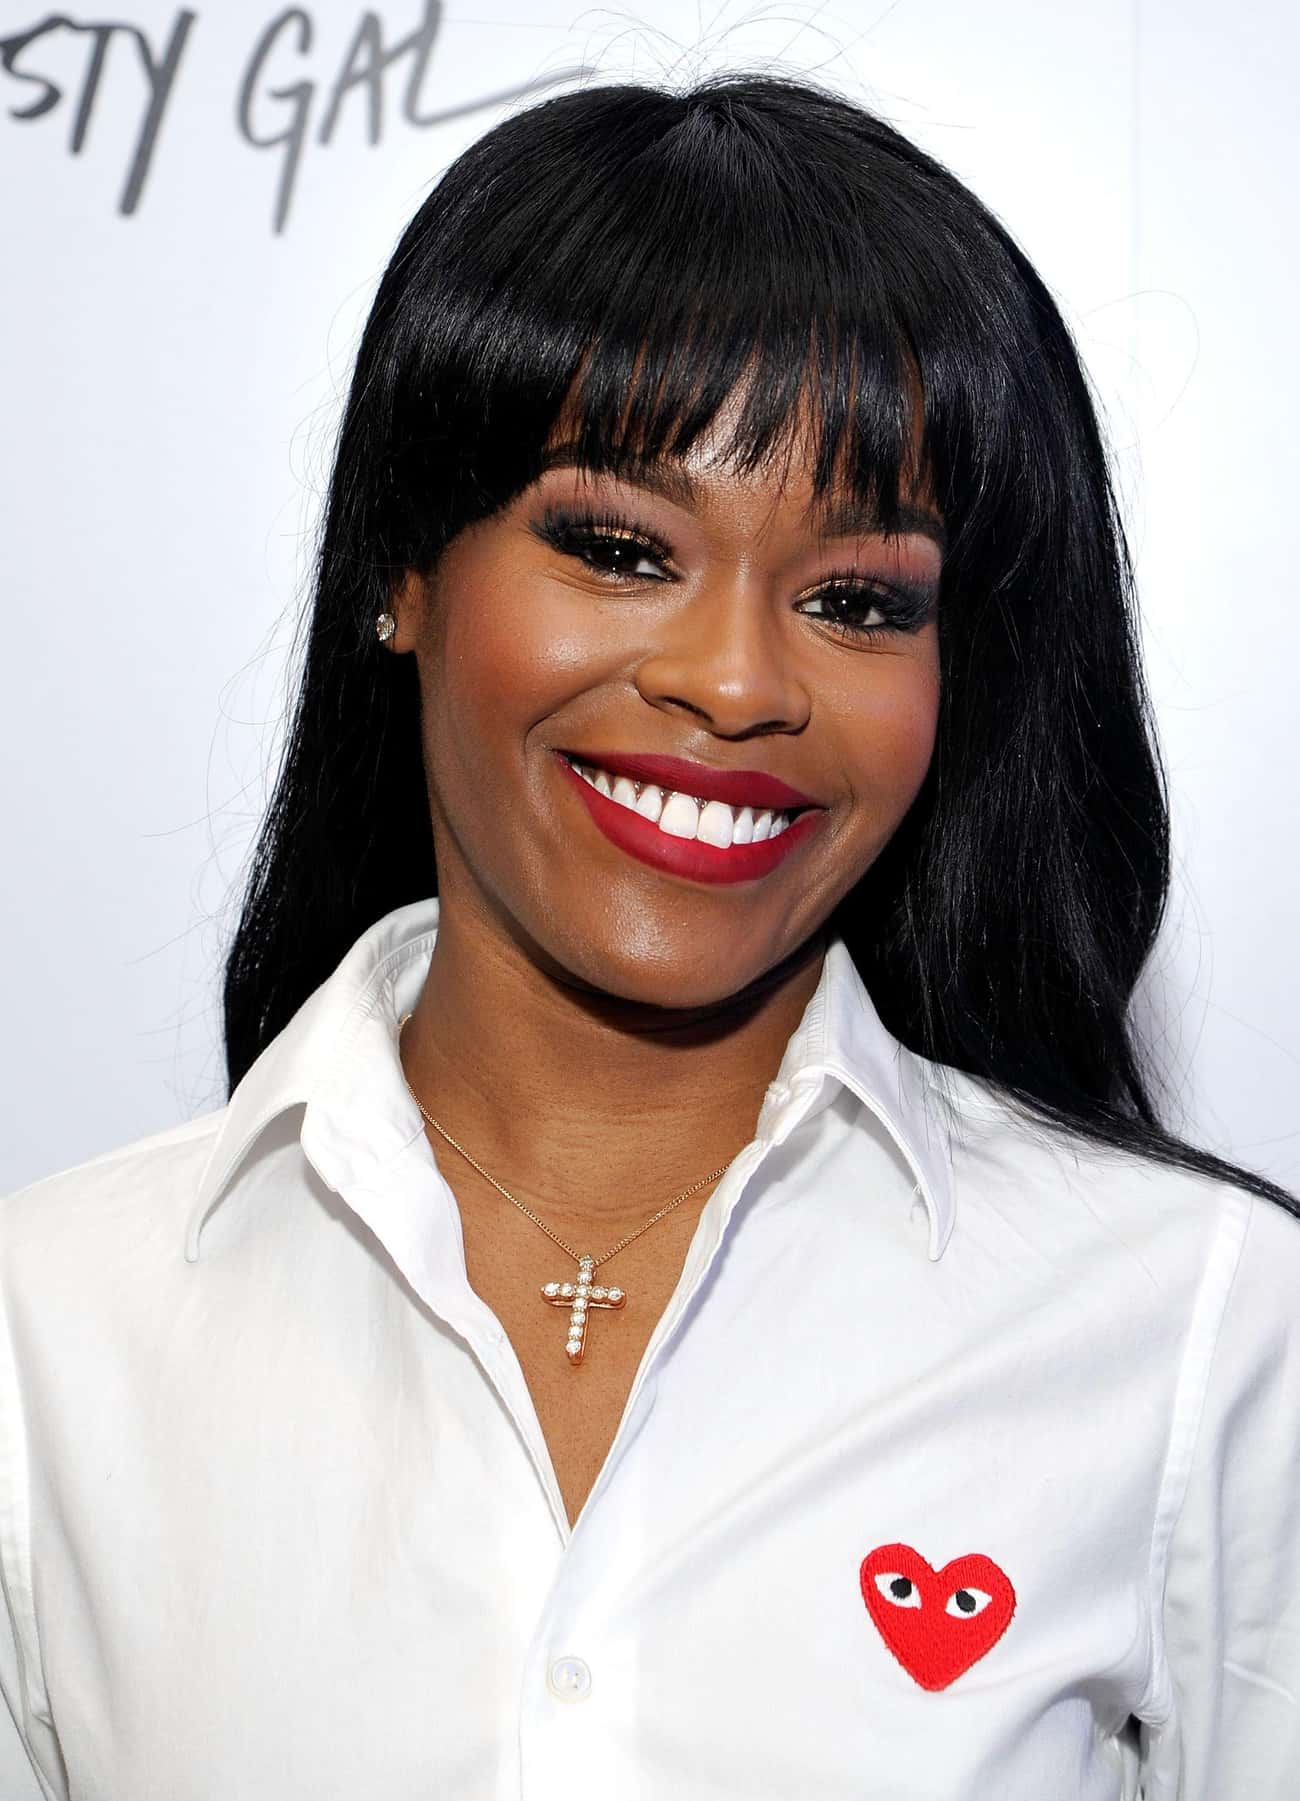 Azealia Banks is listed (or ranked) 3 on the list Famous People You Didn't Know Were Wiccan Or Interested In Witchcraft